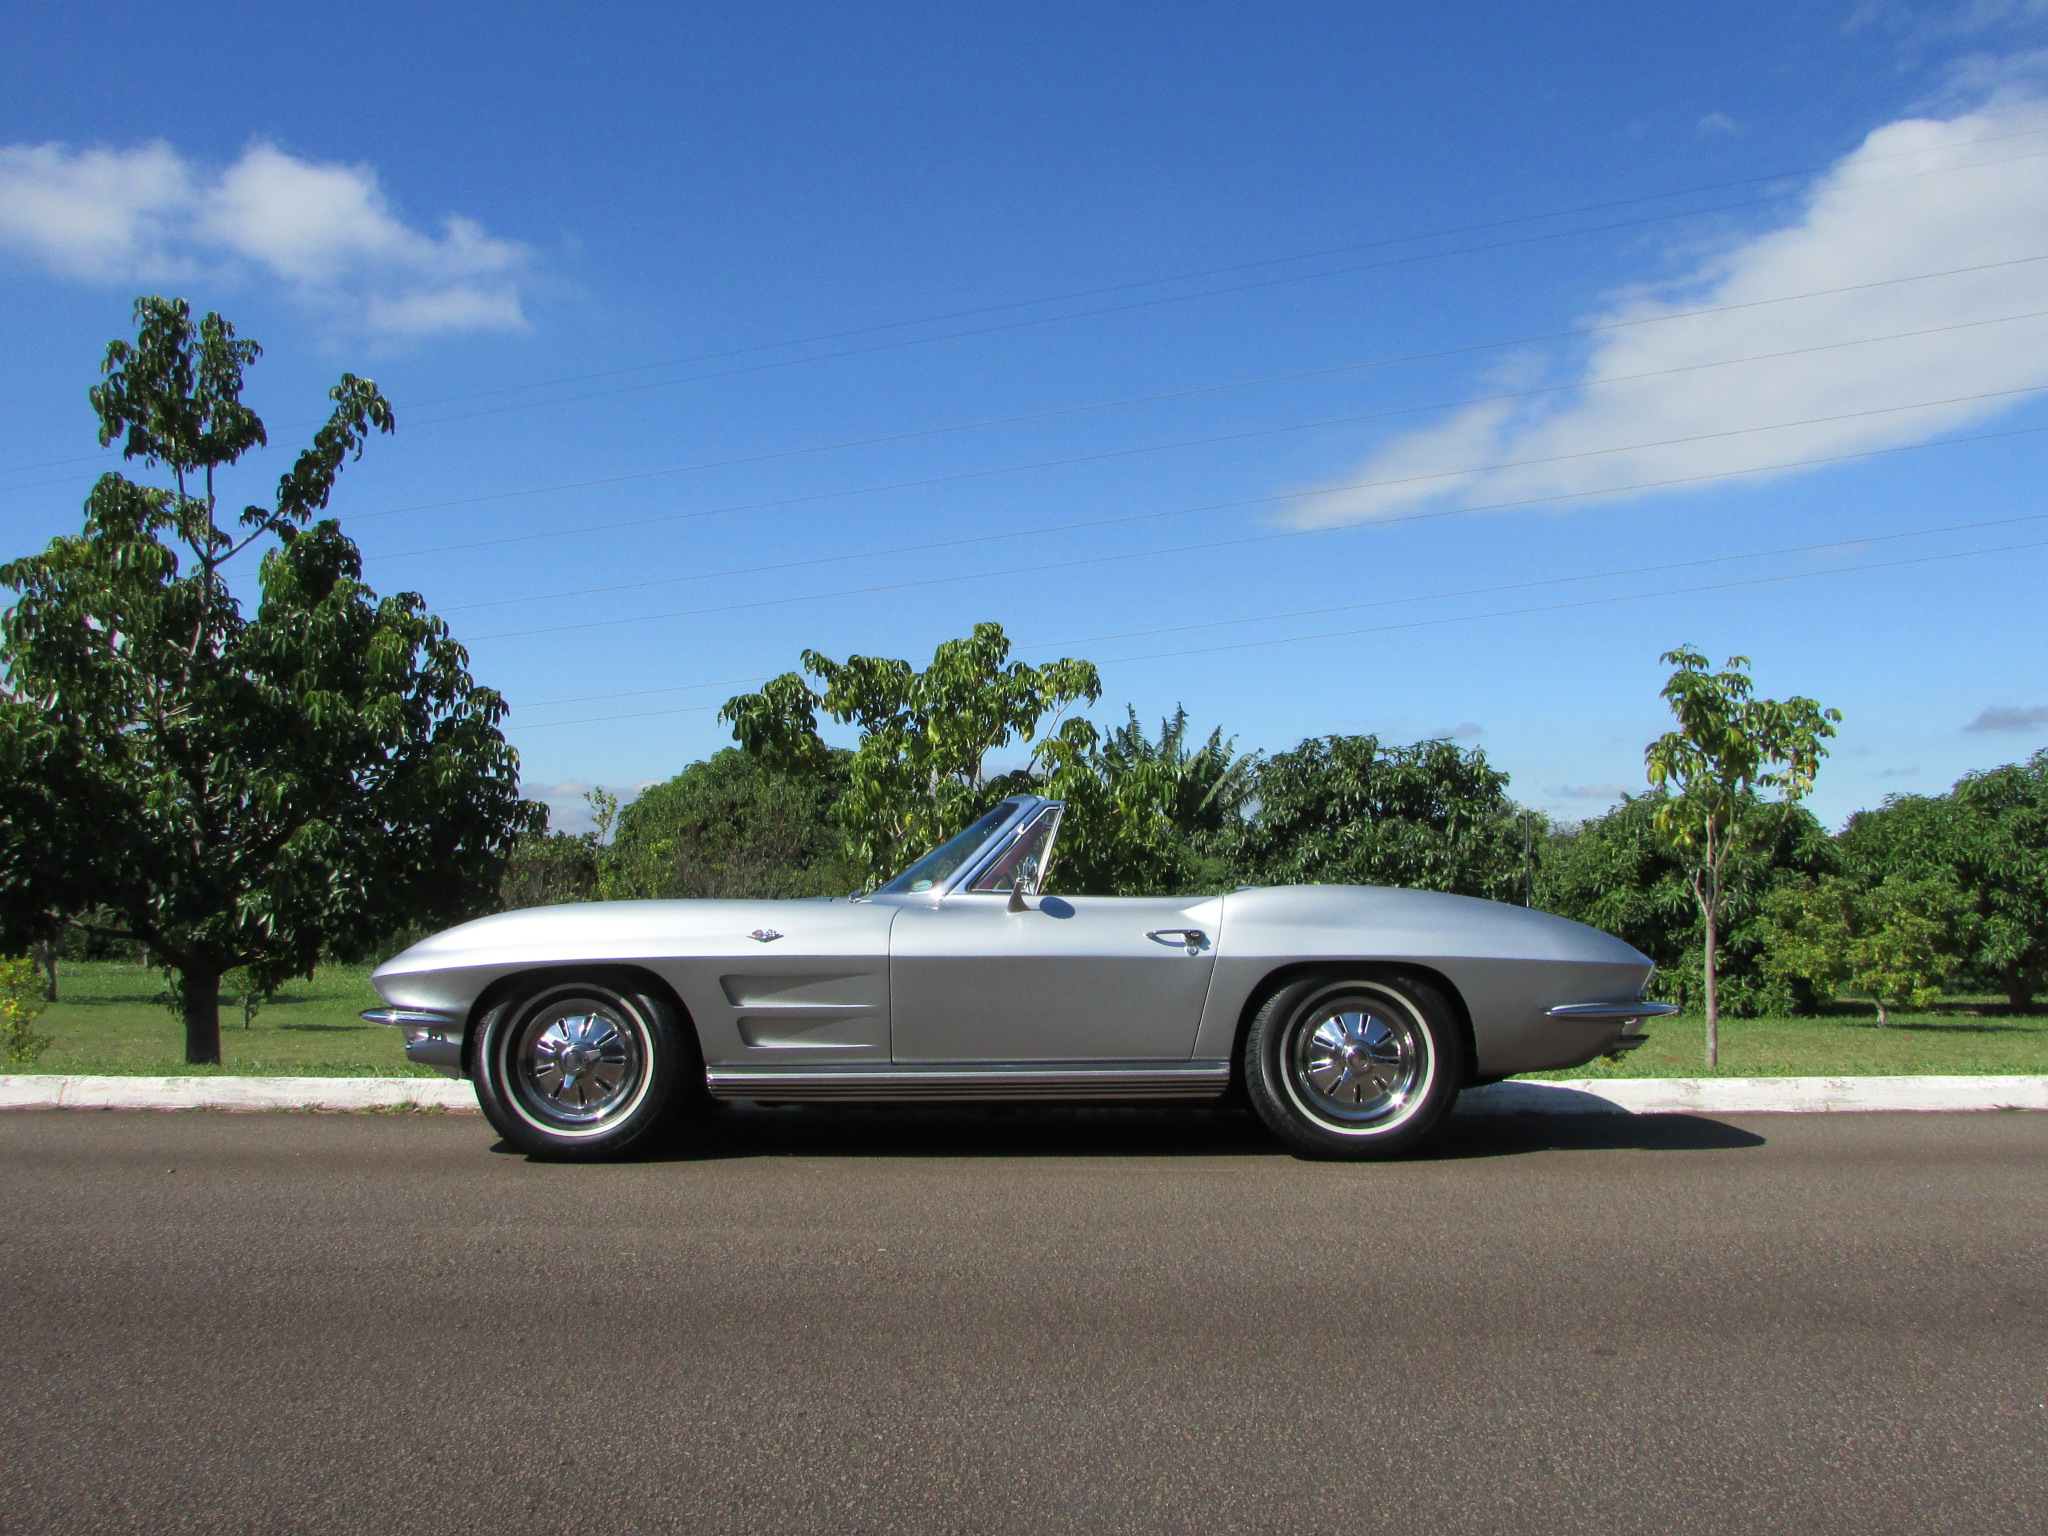 Chevrolet Corvette Sting Ray 1964